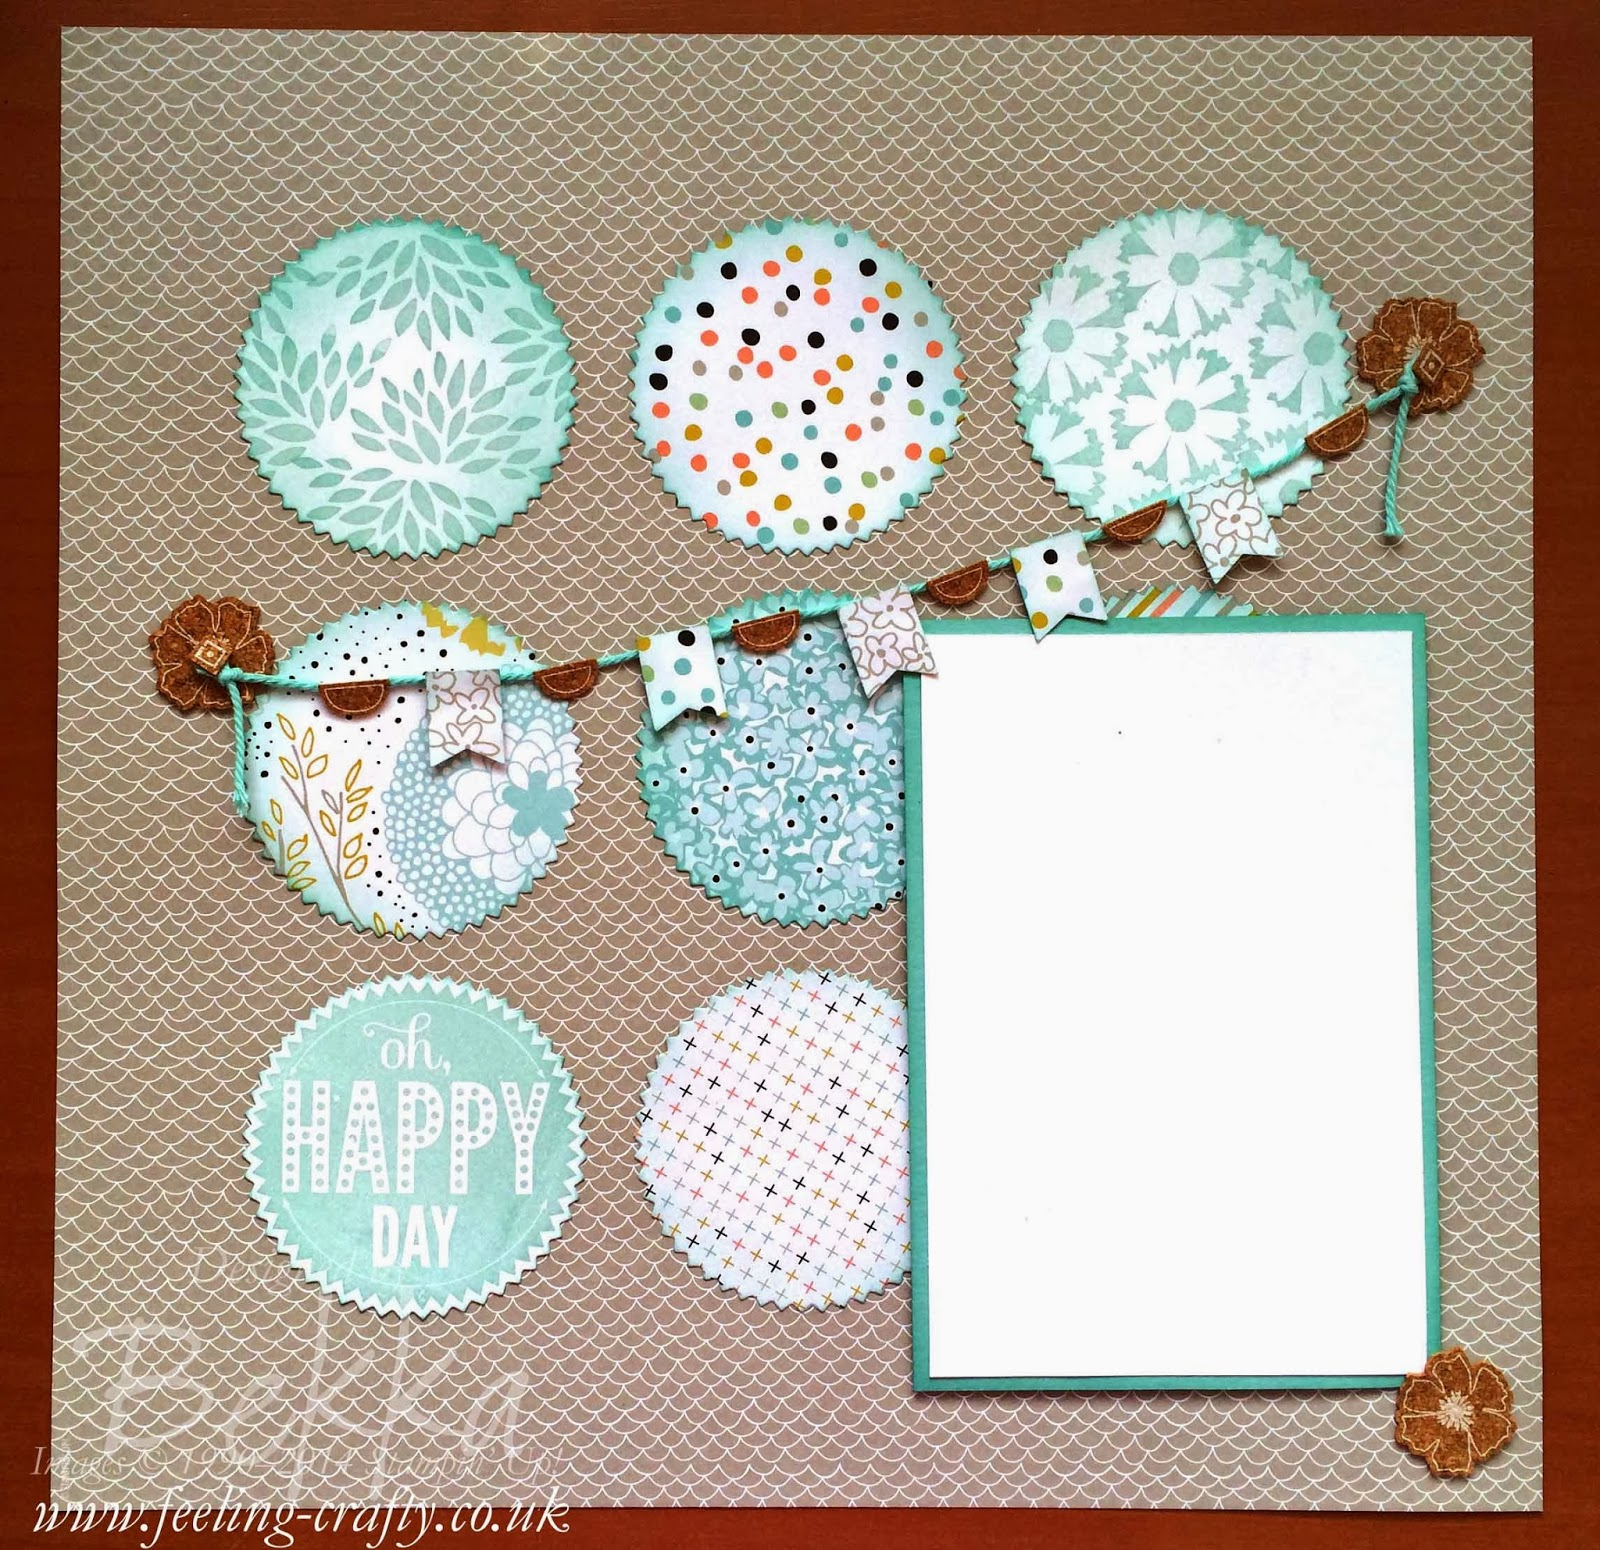 Sale-a-Bration Scrapbook Page featuring lots of the 2014 Free Sale-a-Bration Products along with Starburst Sayings - click here for more info